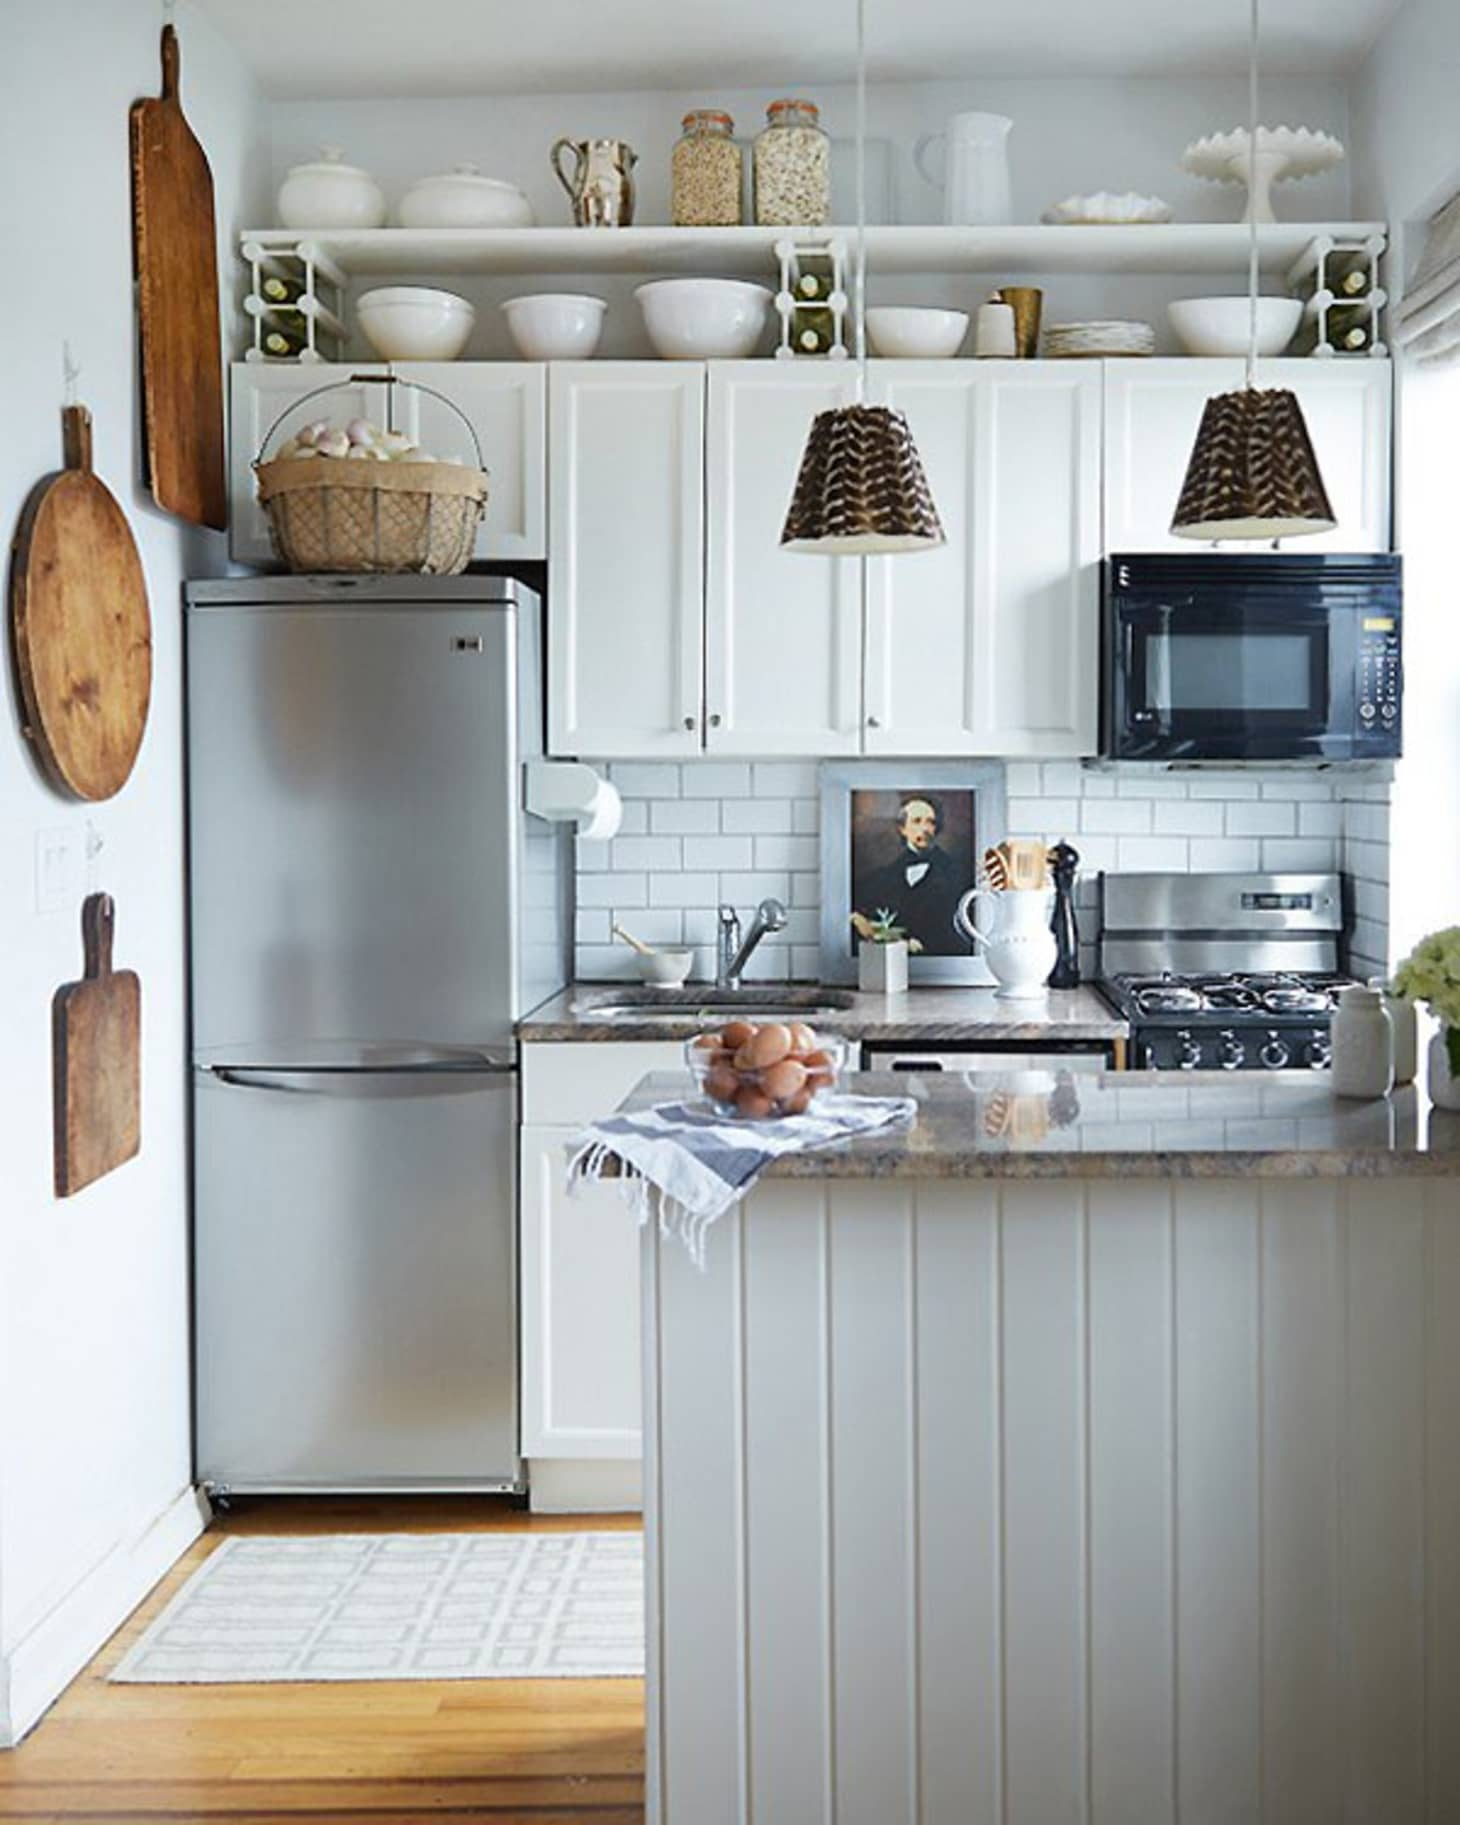 Kitchen En More.9 Ways To Squeeze More Storage Out Of Your Tiny Kitchen Kitchn